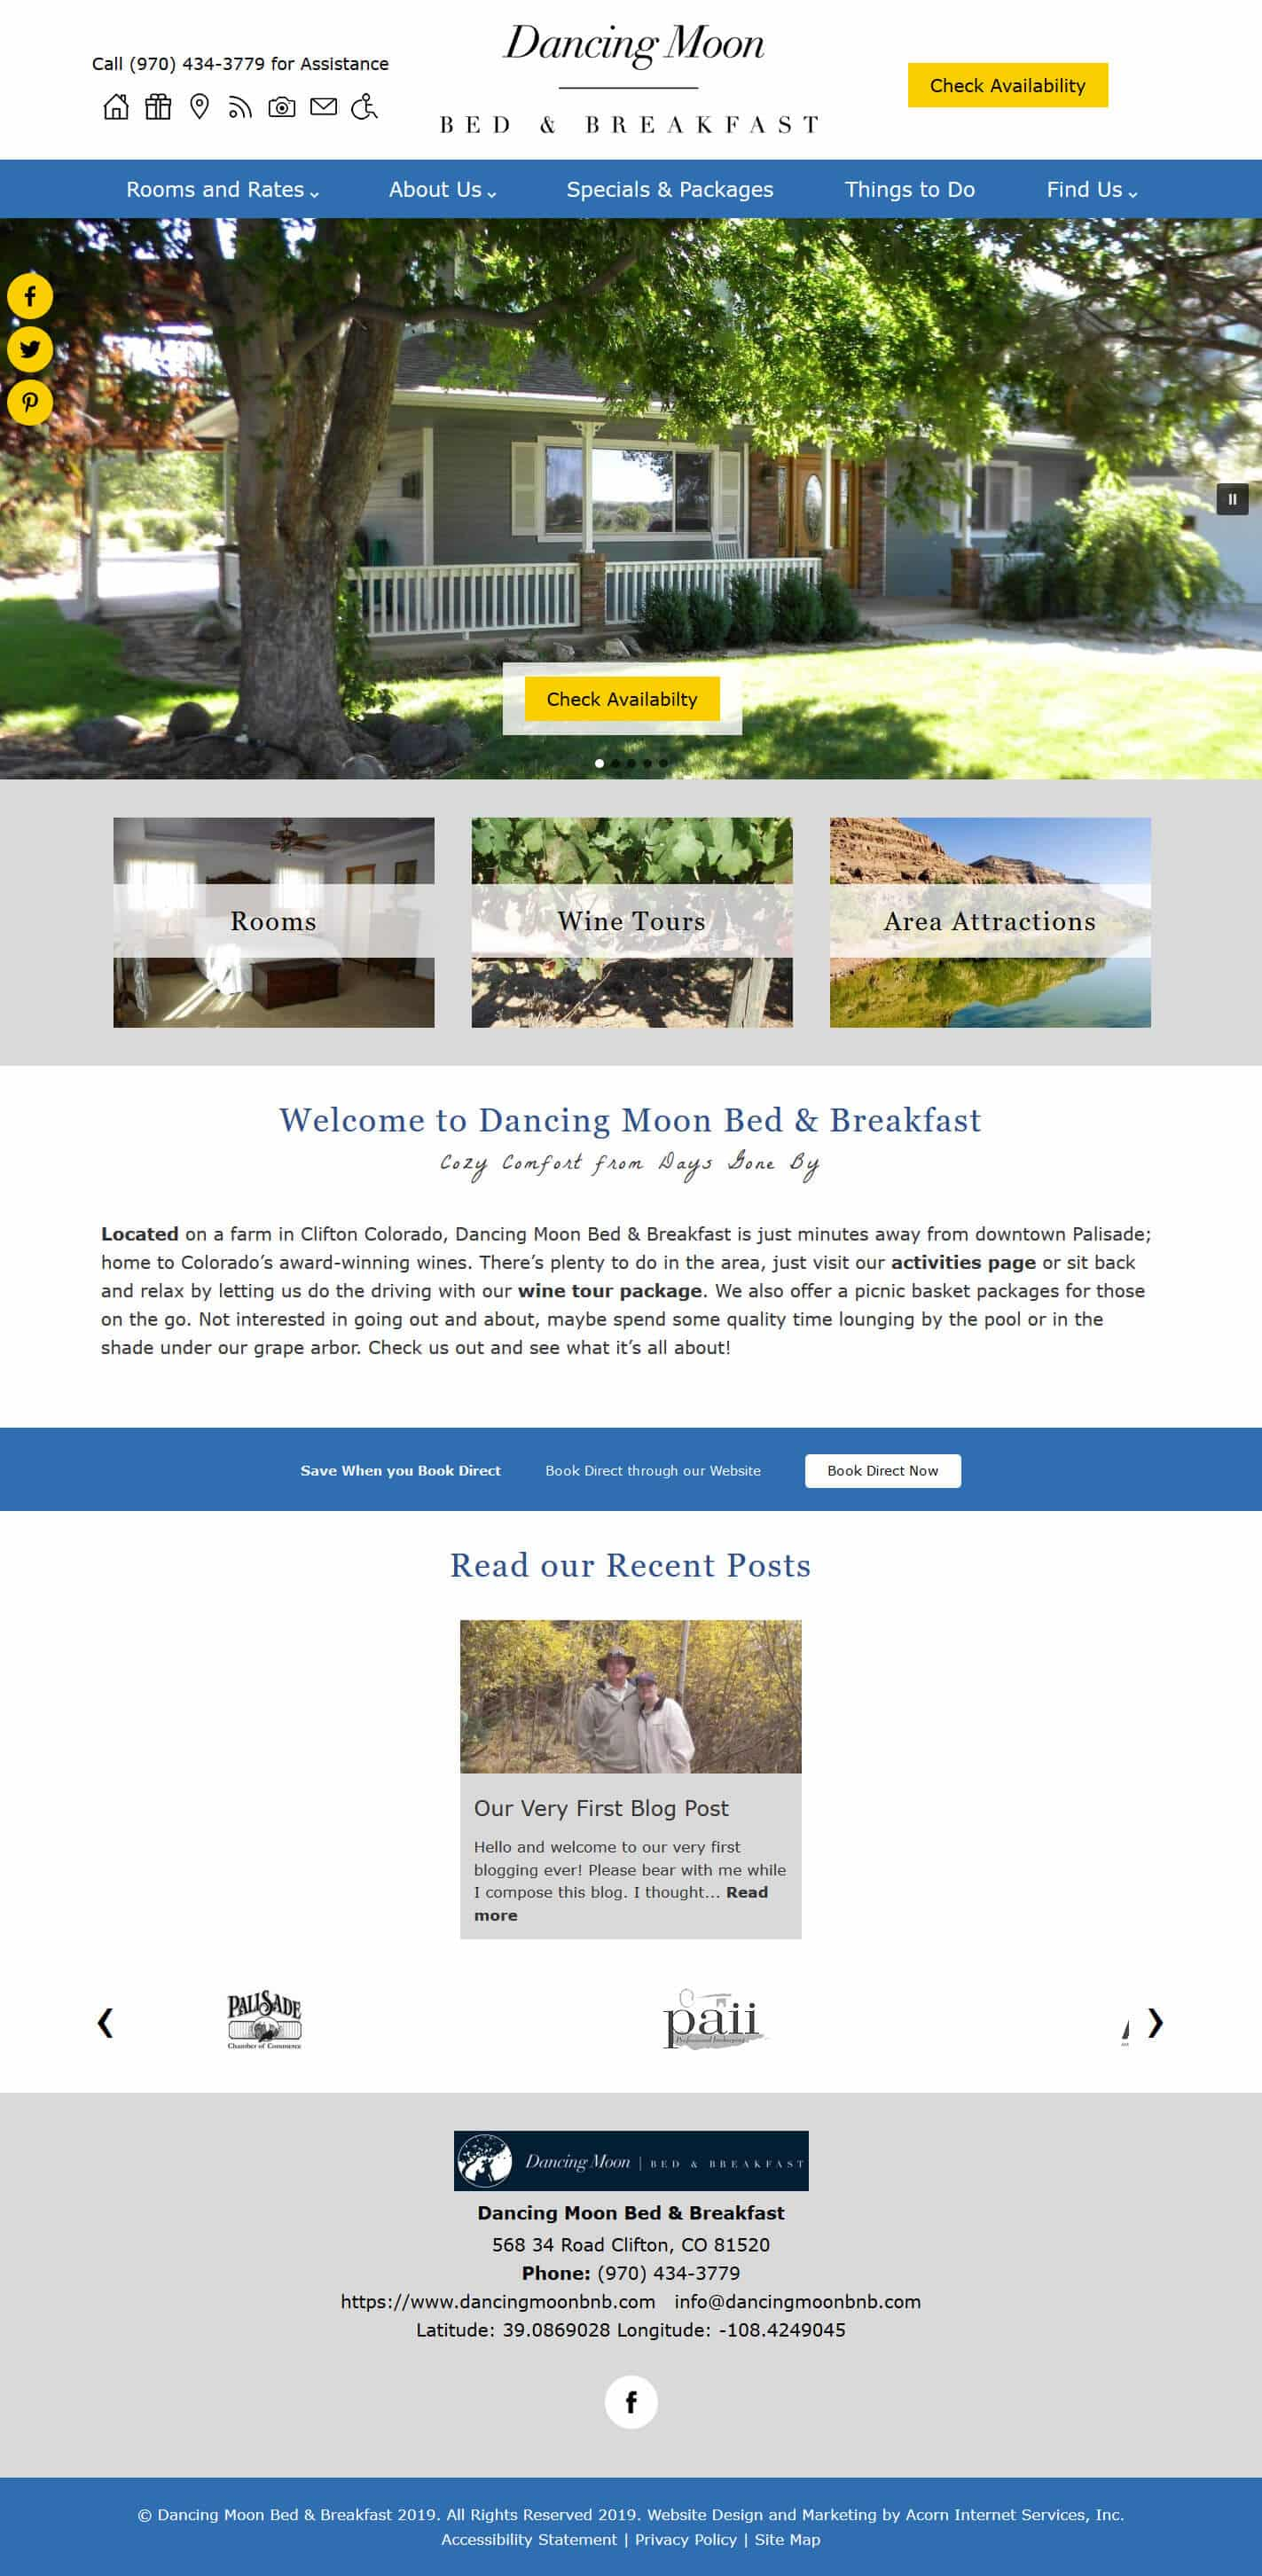 Dancing Moon Bed and Breakfast website home page